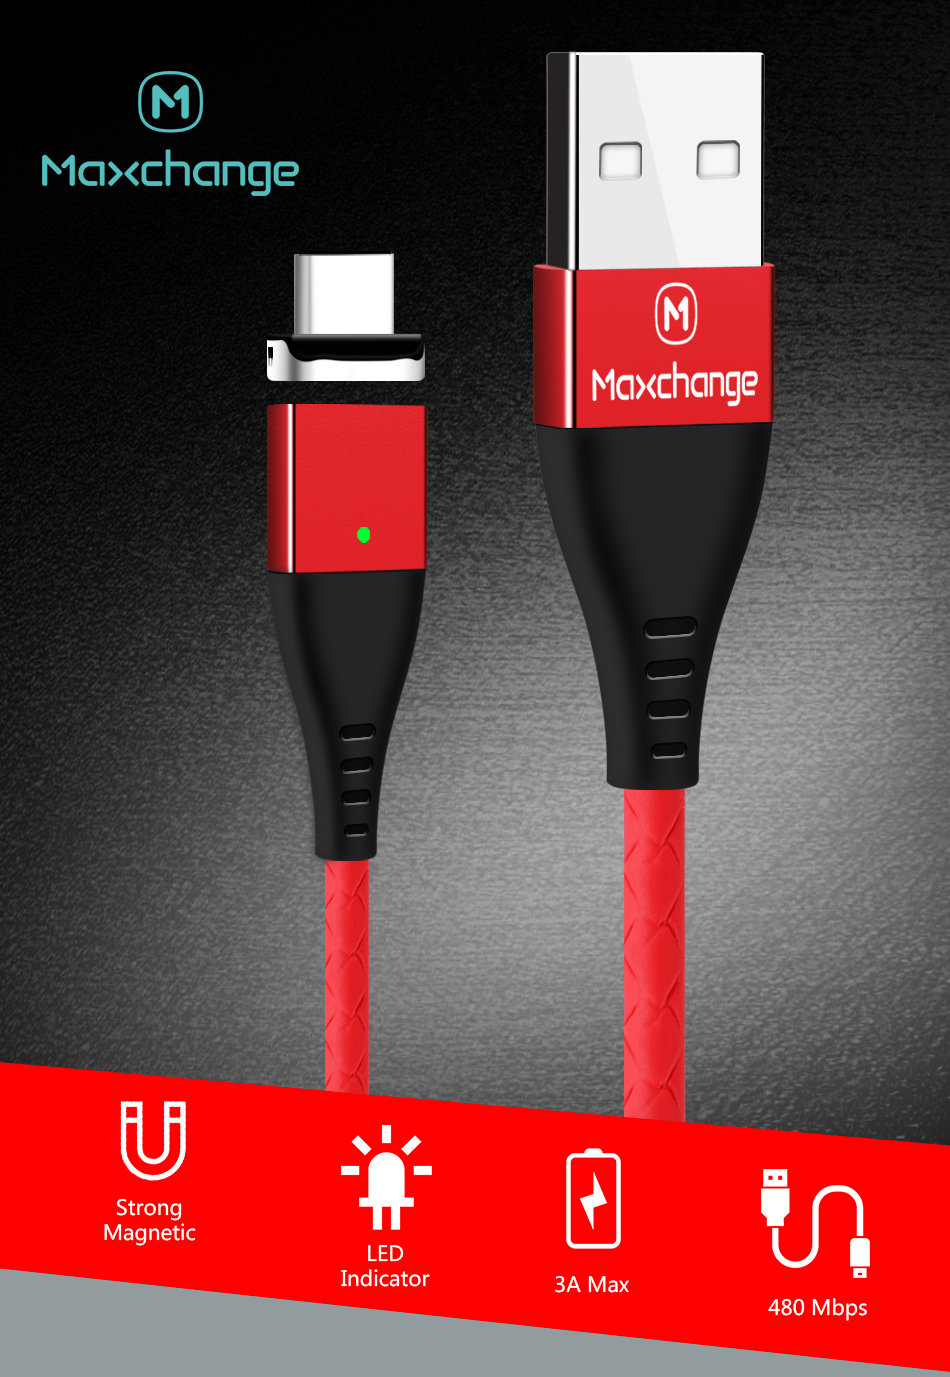 Magnetic Micro USB Cable 2.4A Fast Charge USB Data Cable For Samsung Xiaomi LG Tablet Android Mobile Phone USB Charging Cables